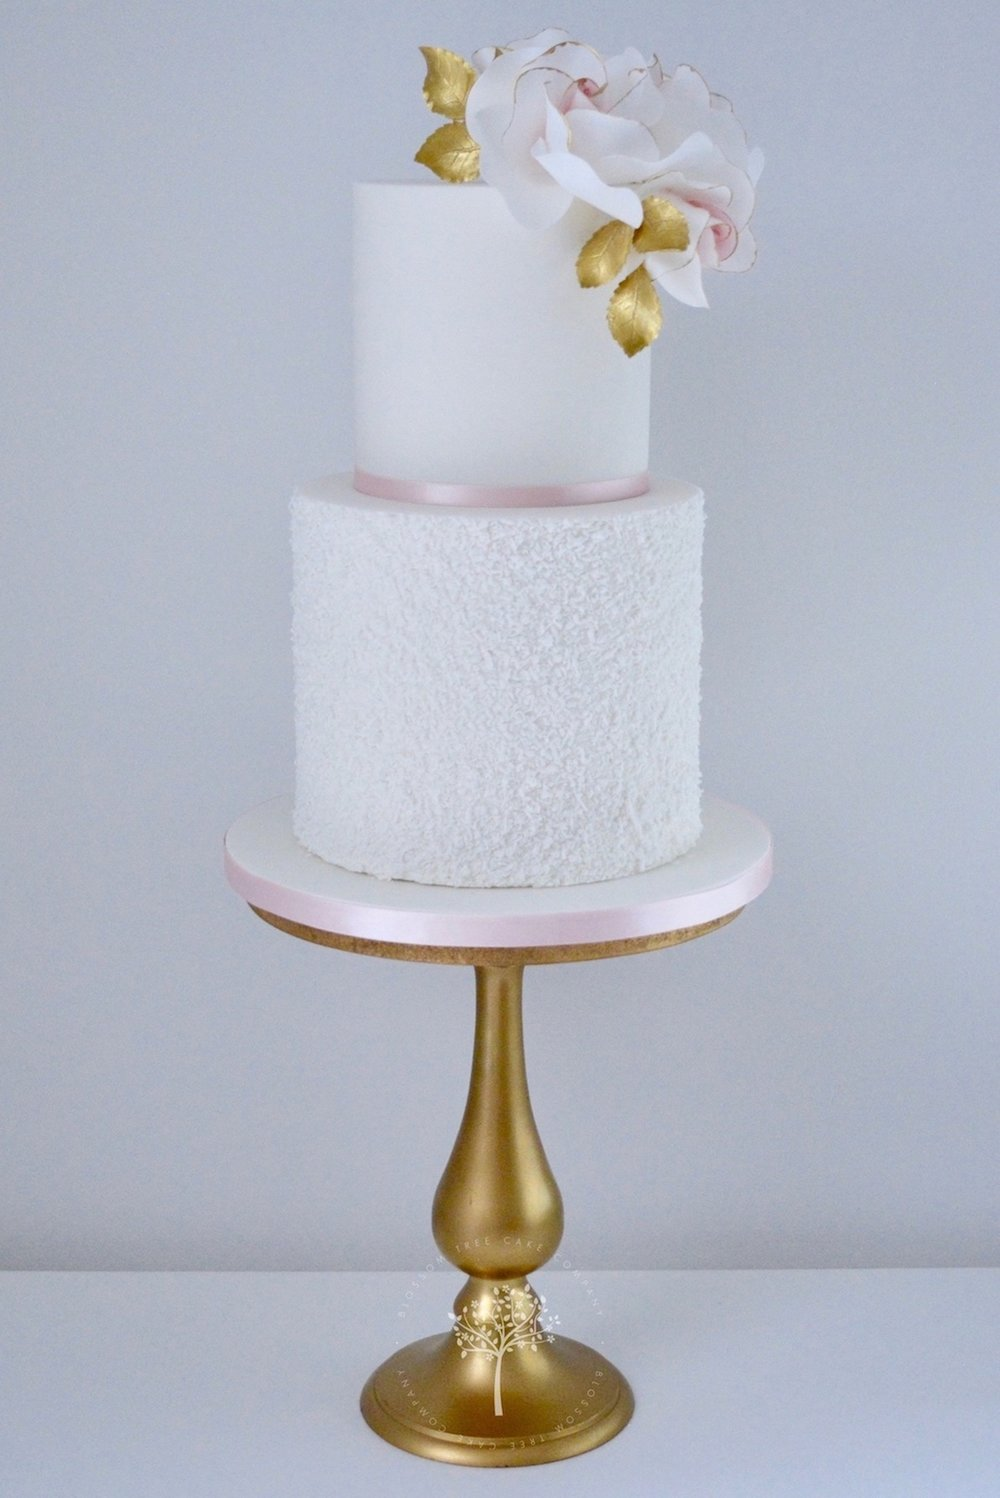 Blush and Gold Roses celebration cake by Blossom Tree Cake Company Harrogate North Yorkshire.jpg